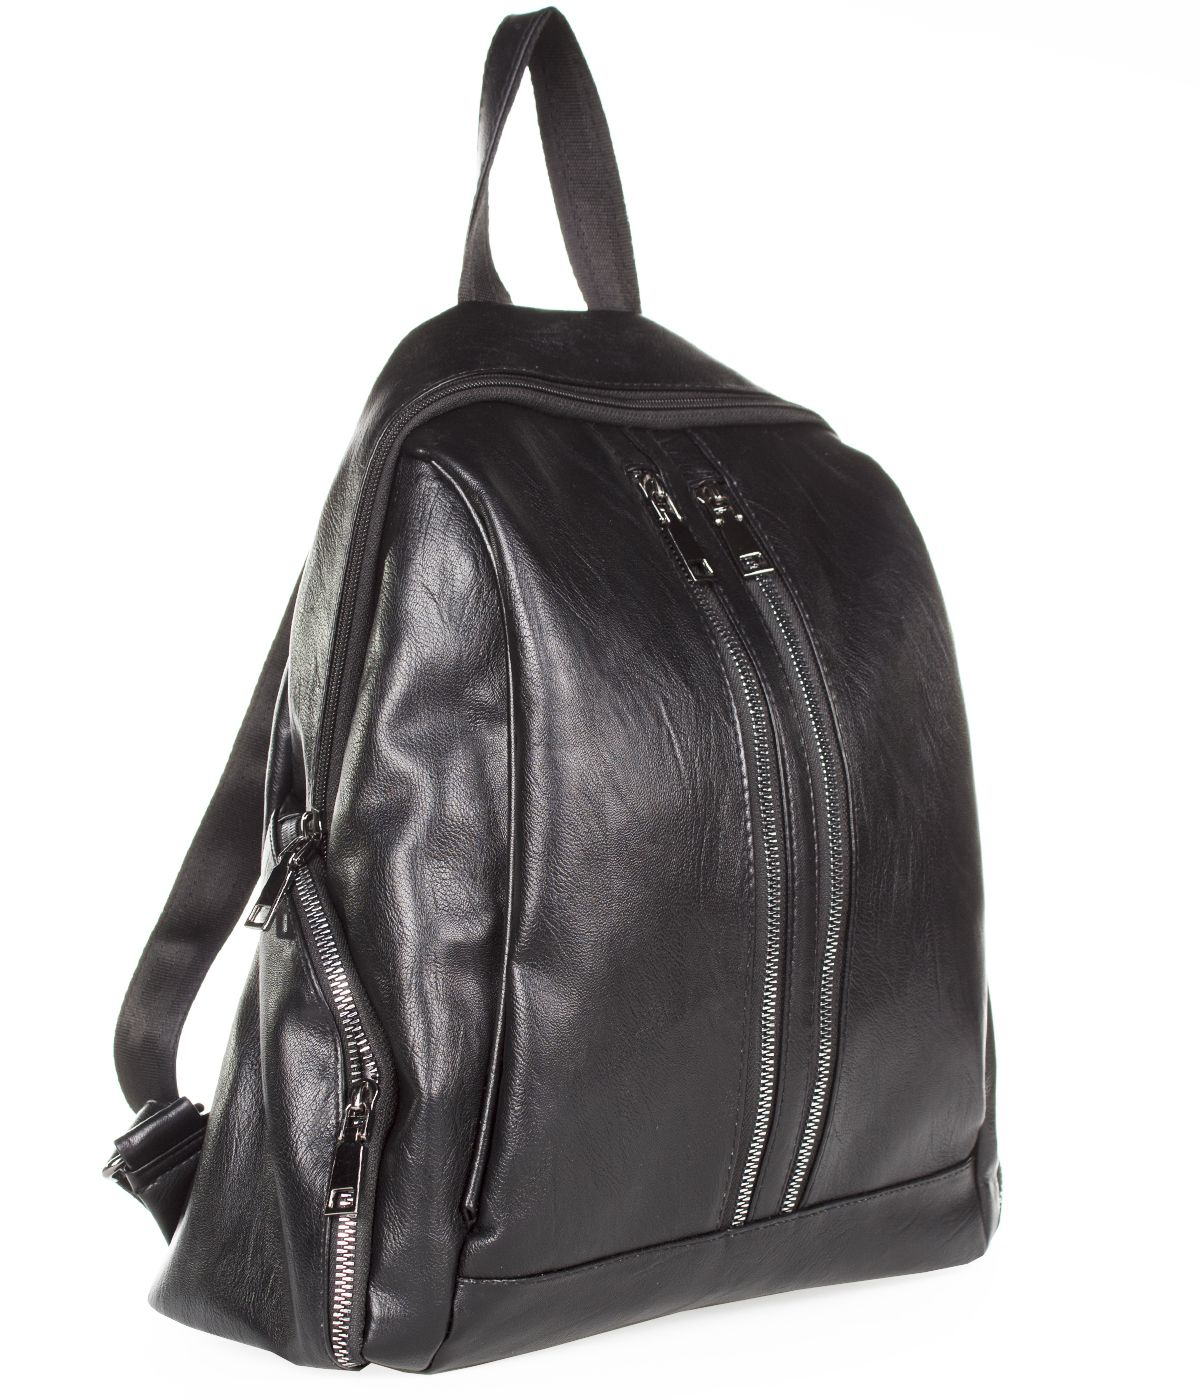 BLACK LEATHER BACKPACK 0